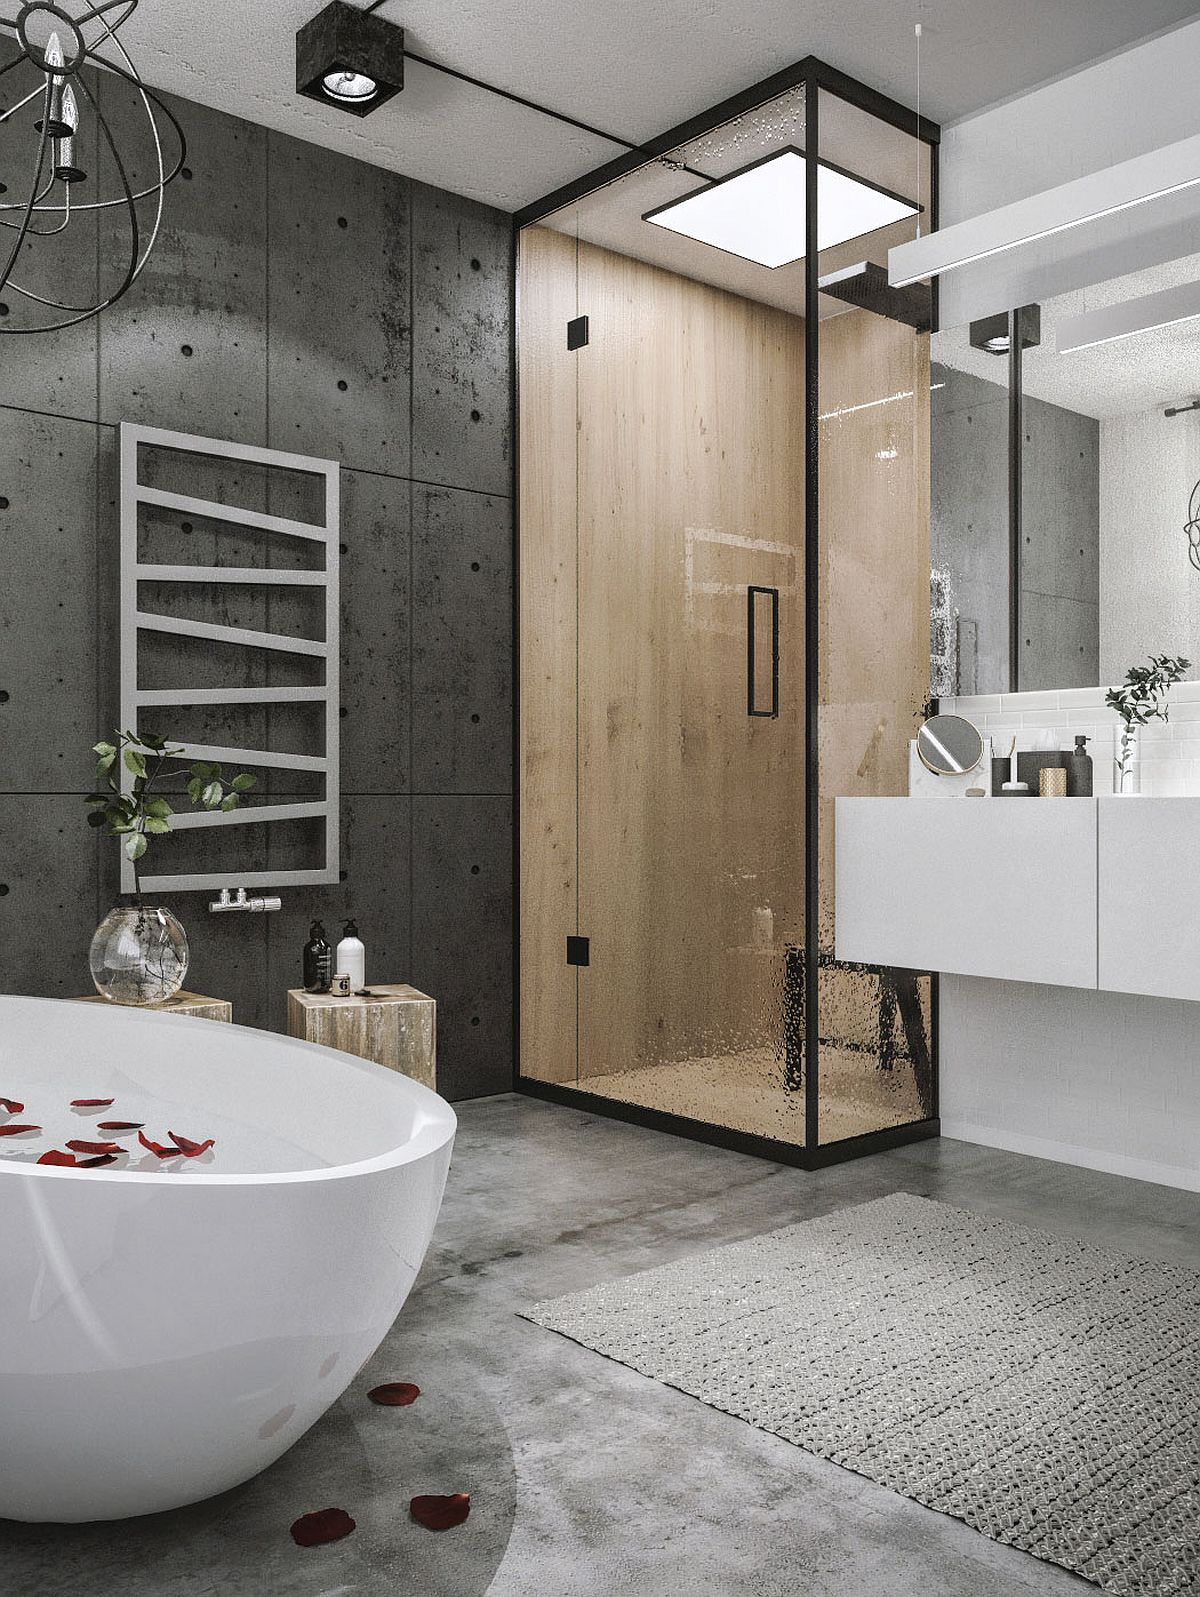 Corner shower area with sliding glass doors